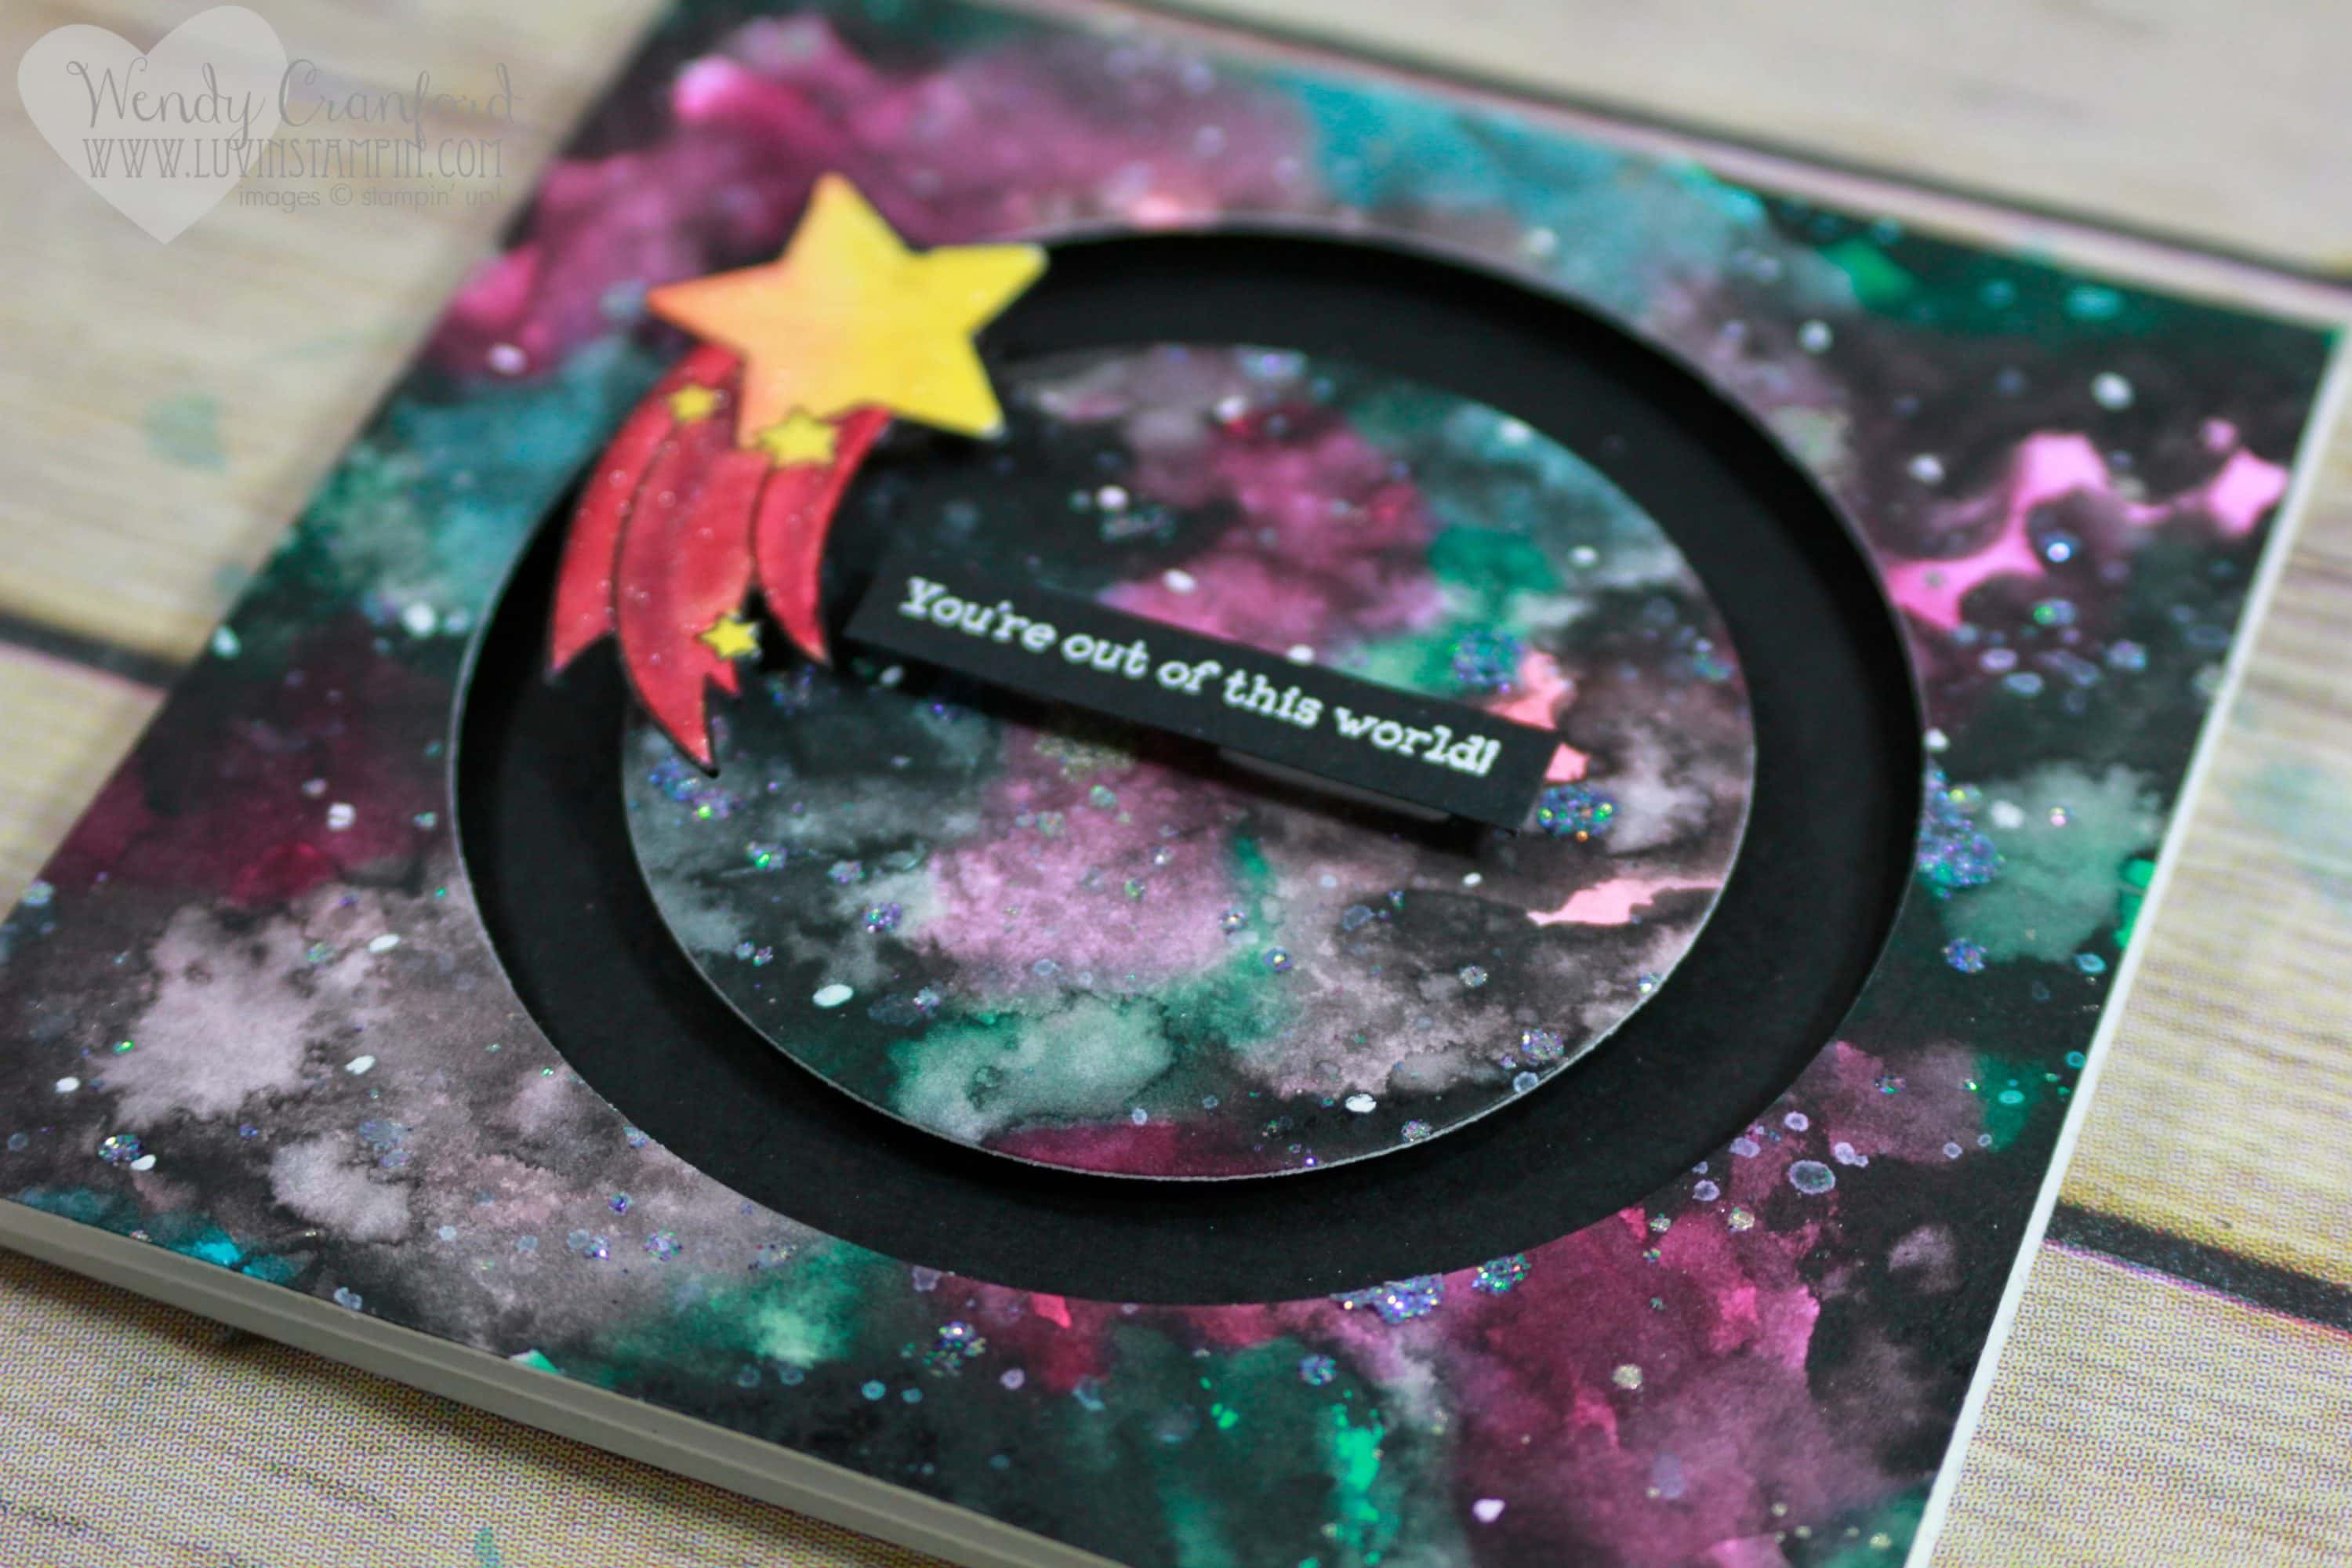 How to create a galaxy background for your card. So simple you will be shocked. Wendy Cranford luvinstampin.com